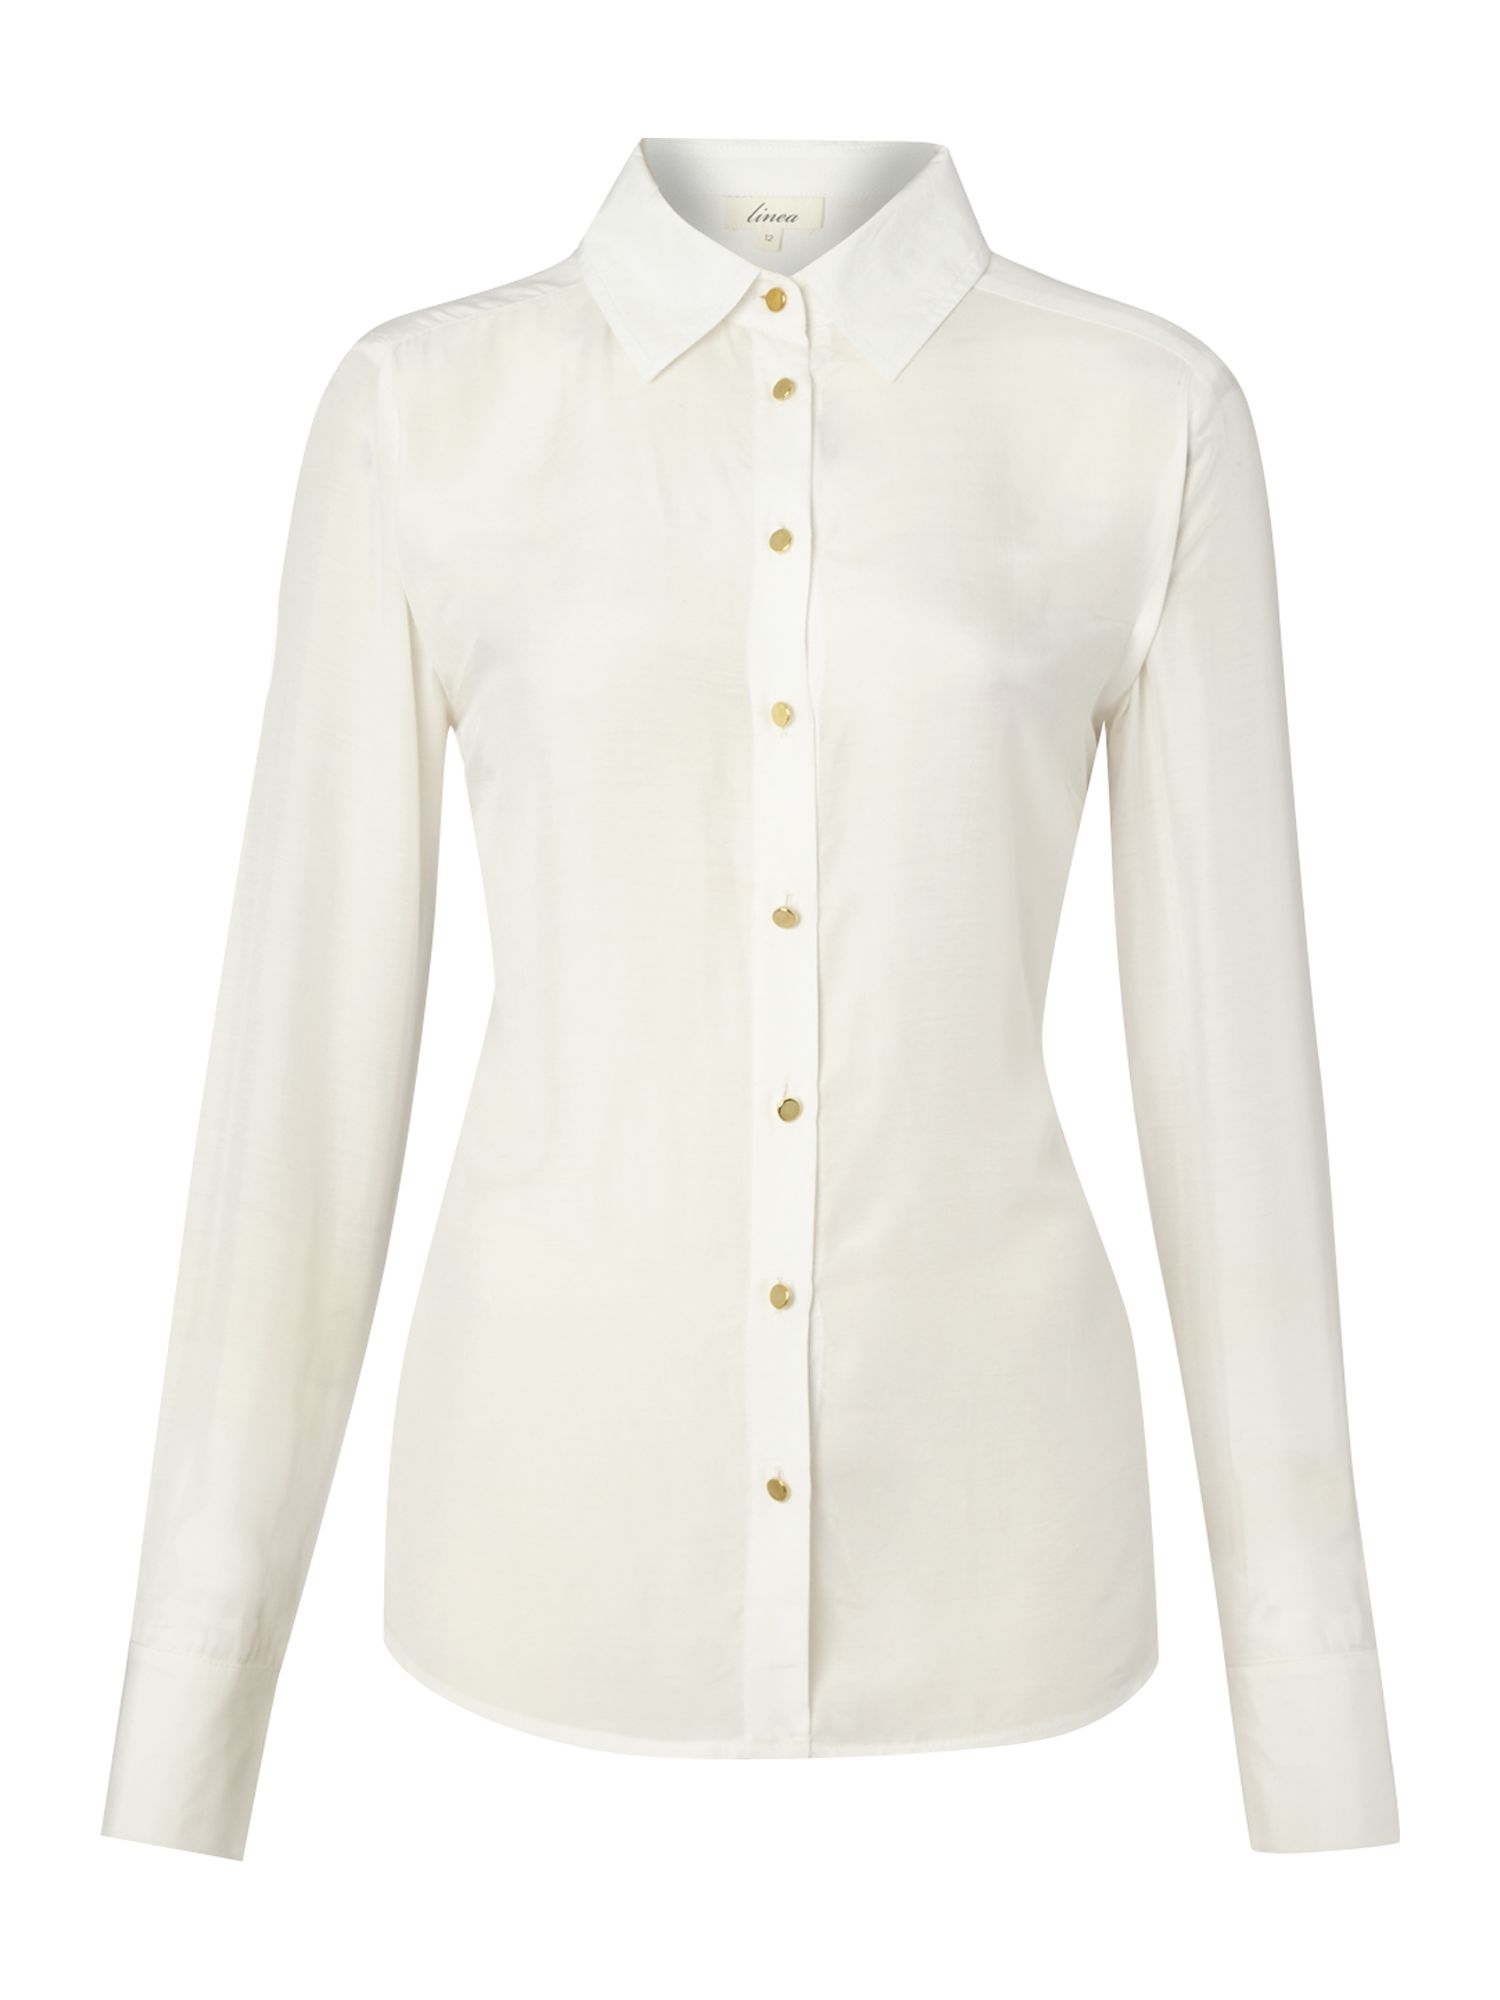 Gold button detail soft shirt